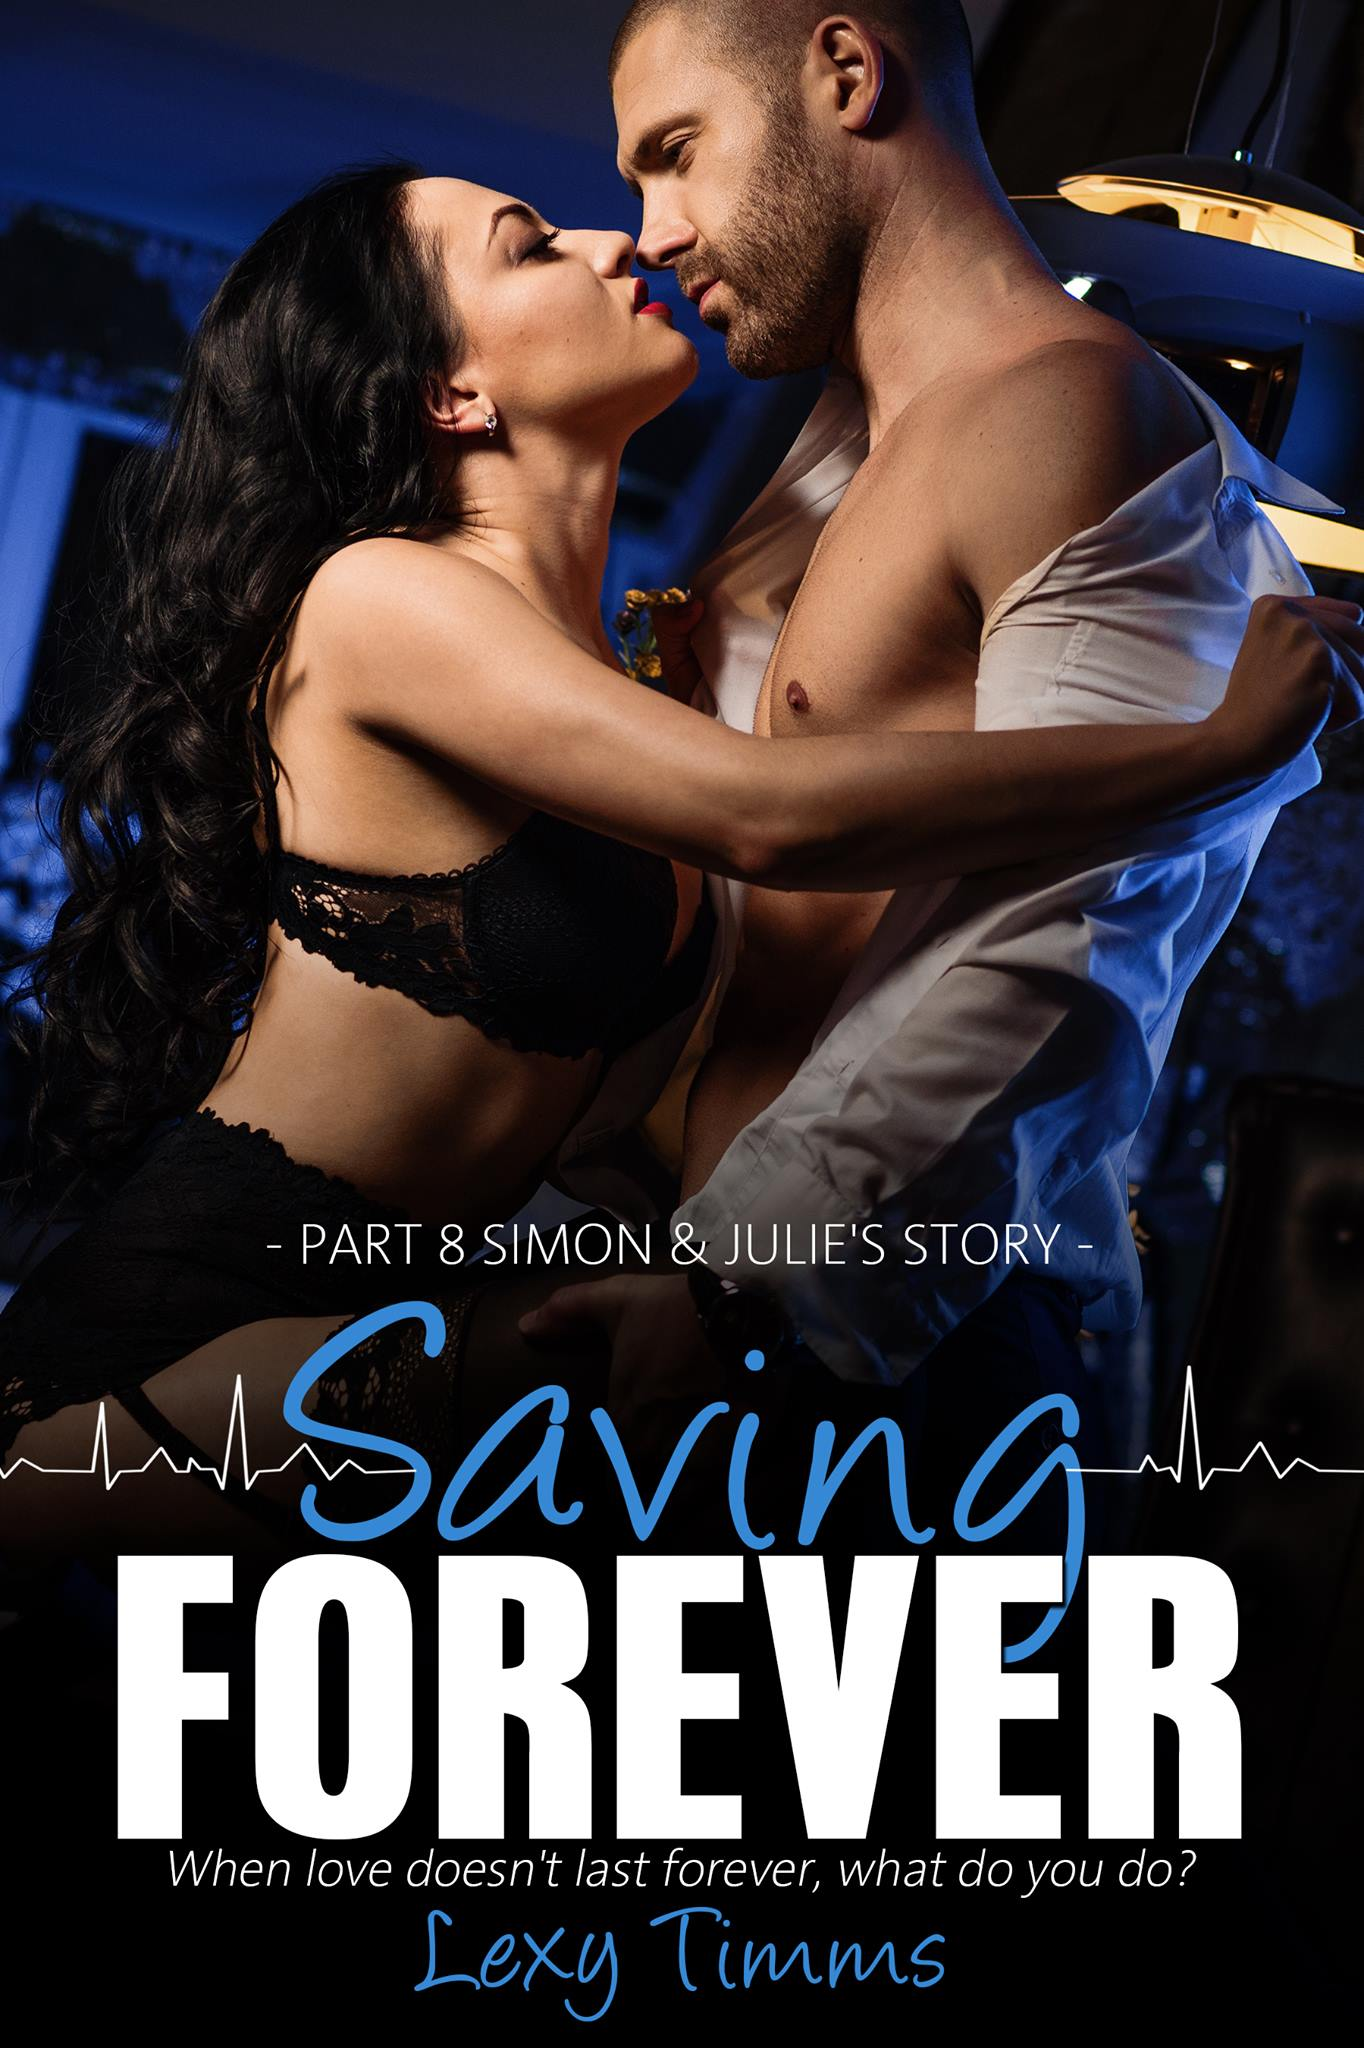 Saving forever-part 8